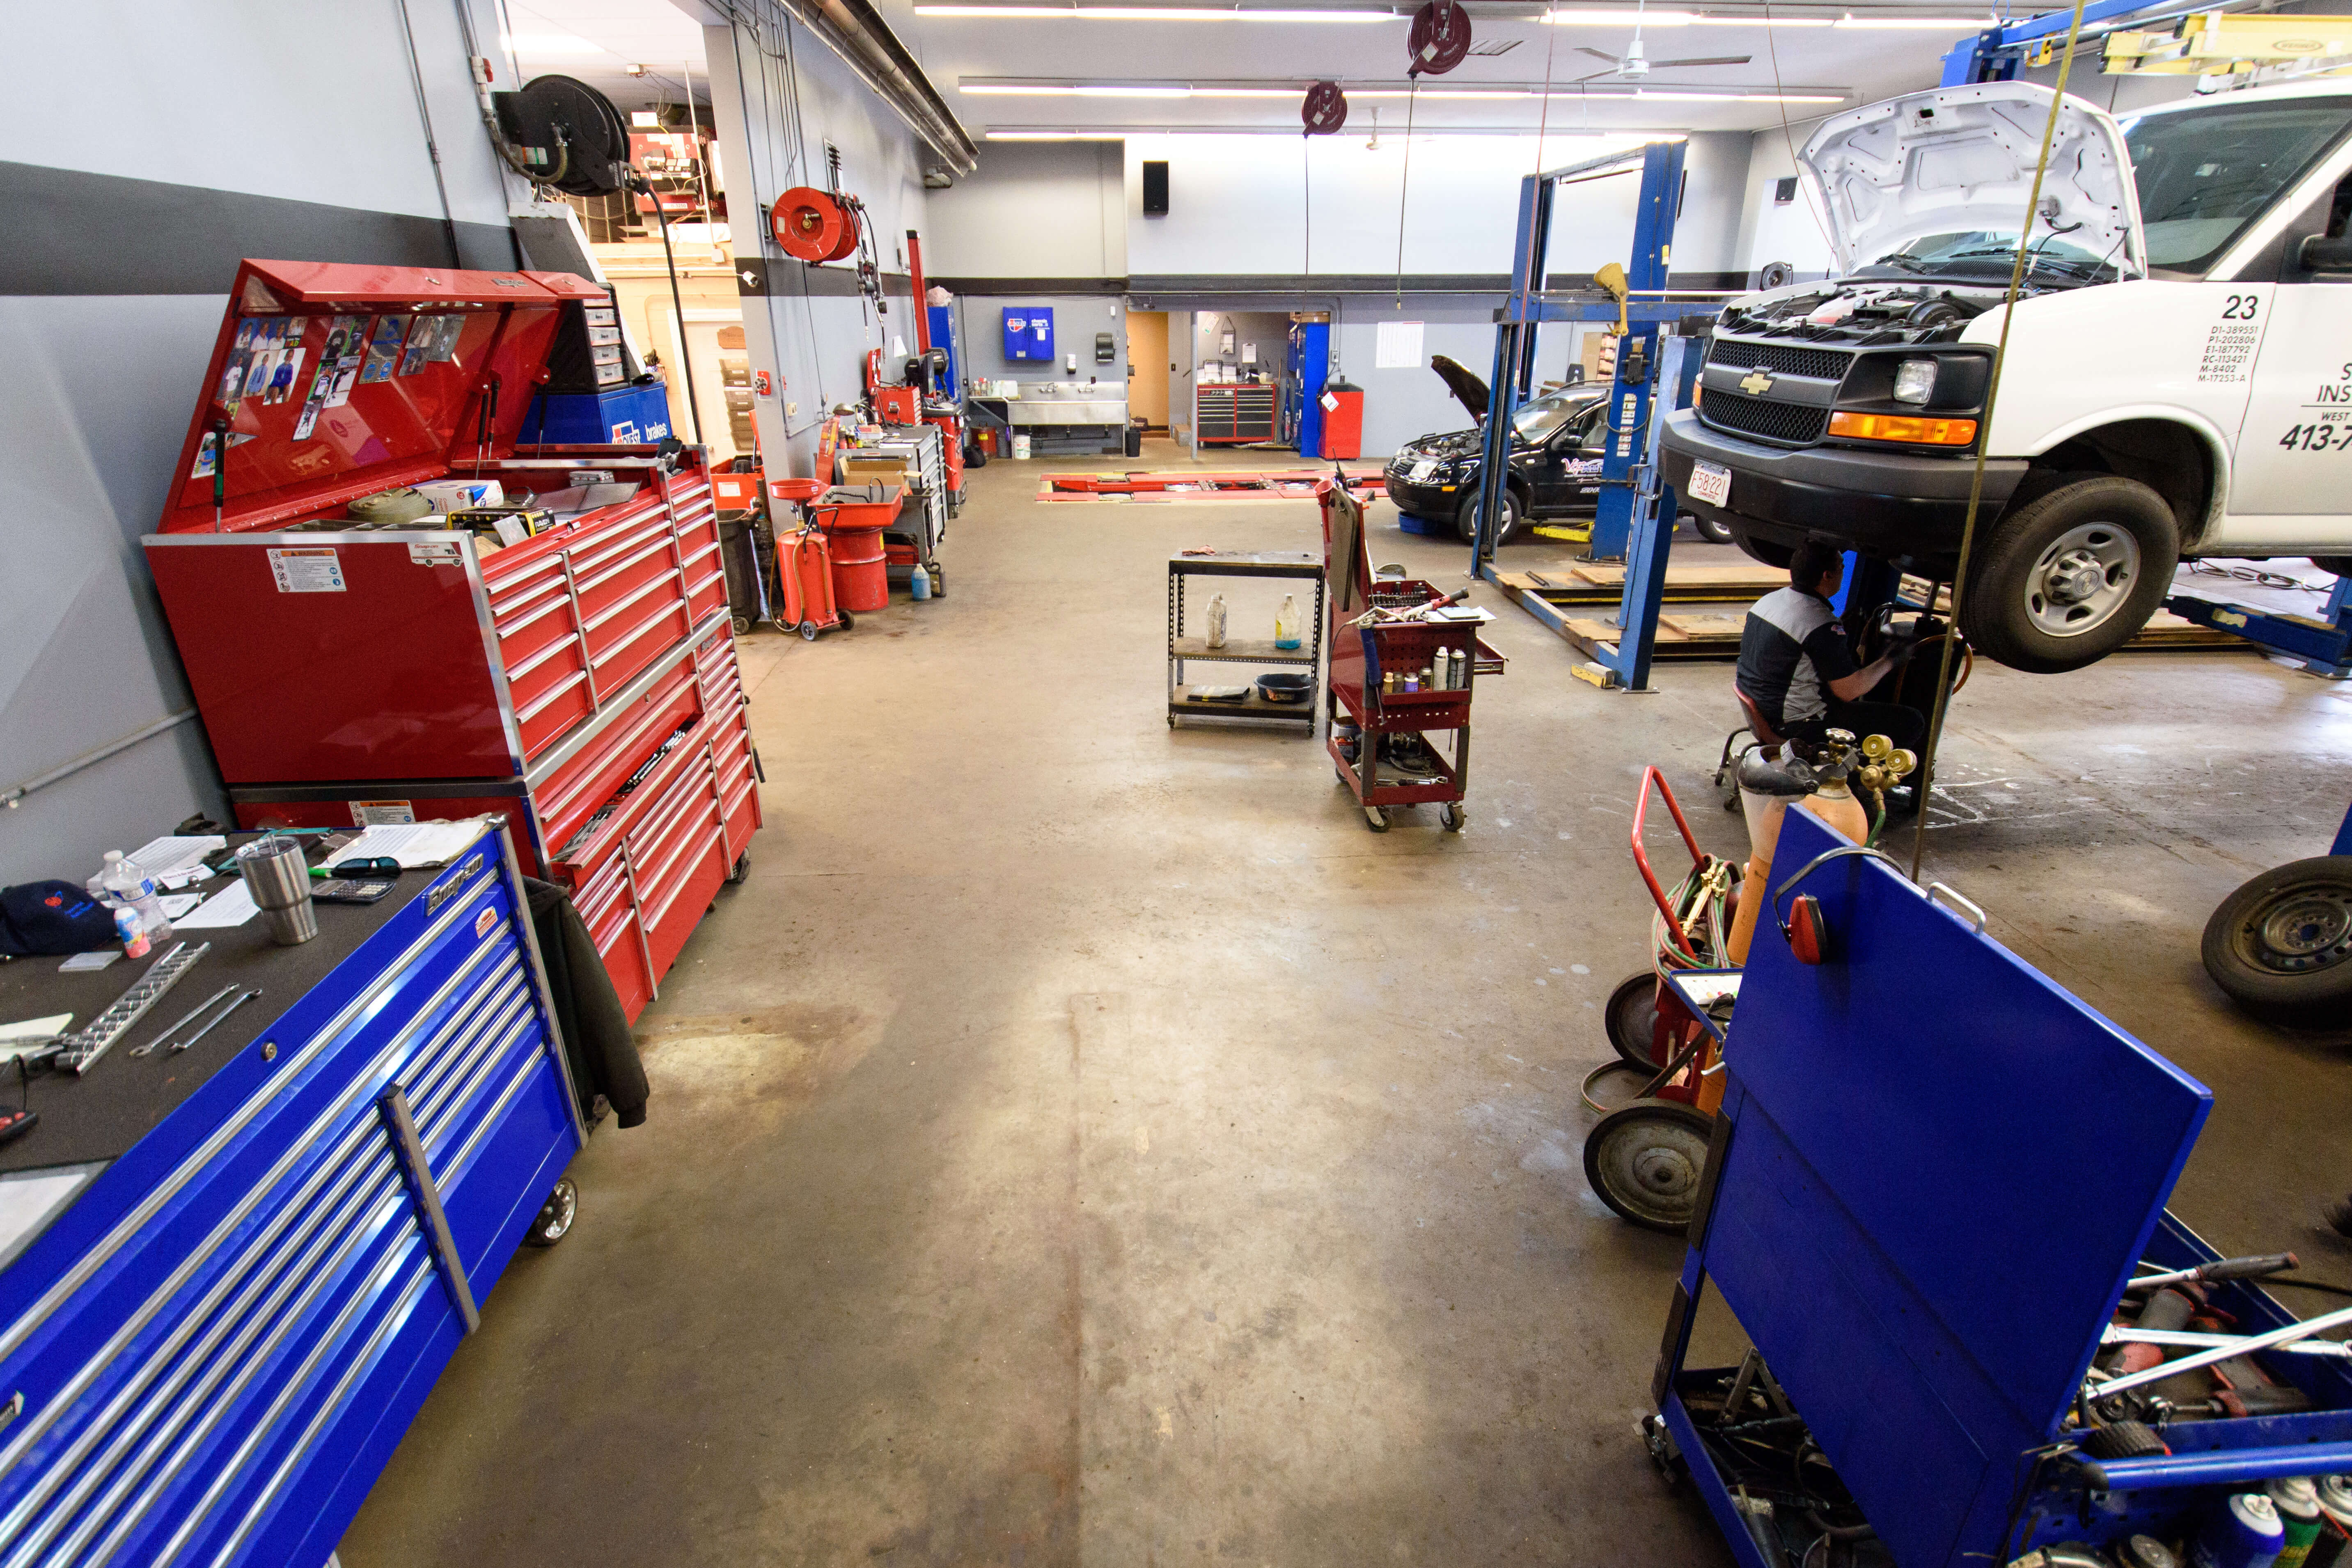 Car Wheel Alignment Abu Dhabi, Lifes Better On Two Wheels V F Auto, Car Wheel Alignment Abu Dhabi